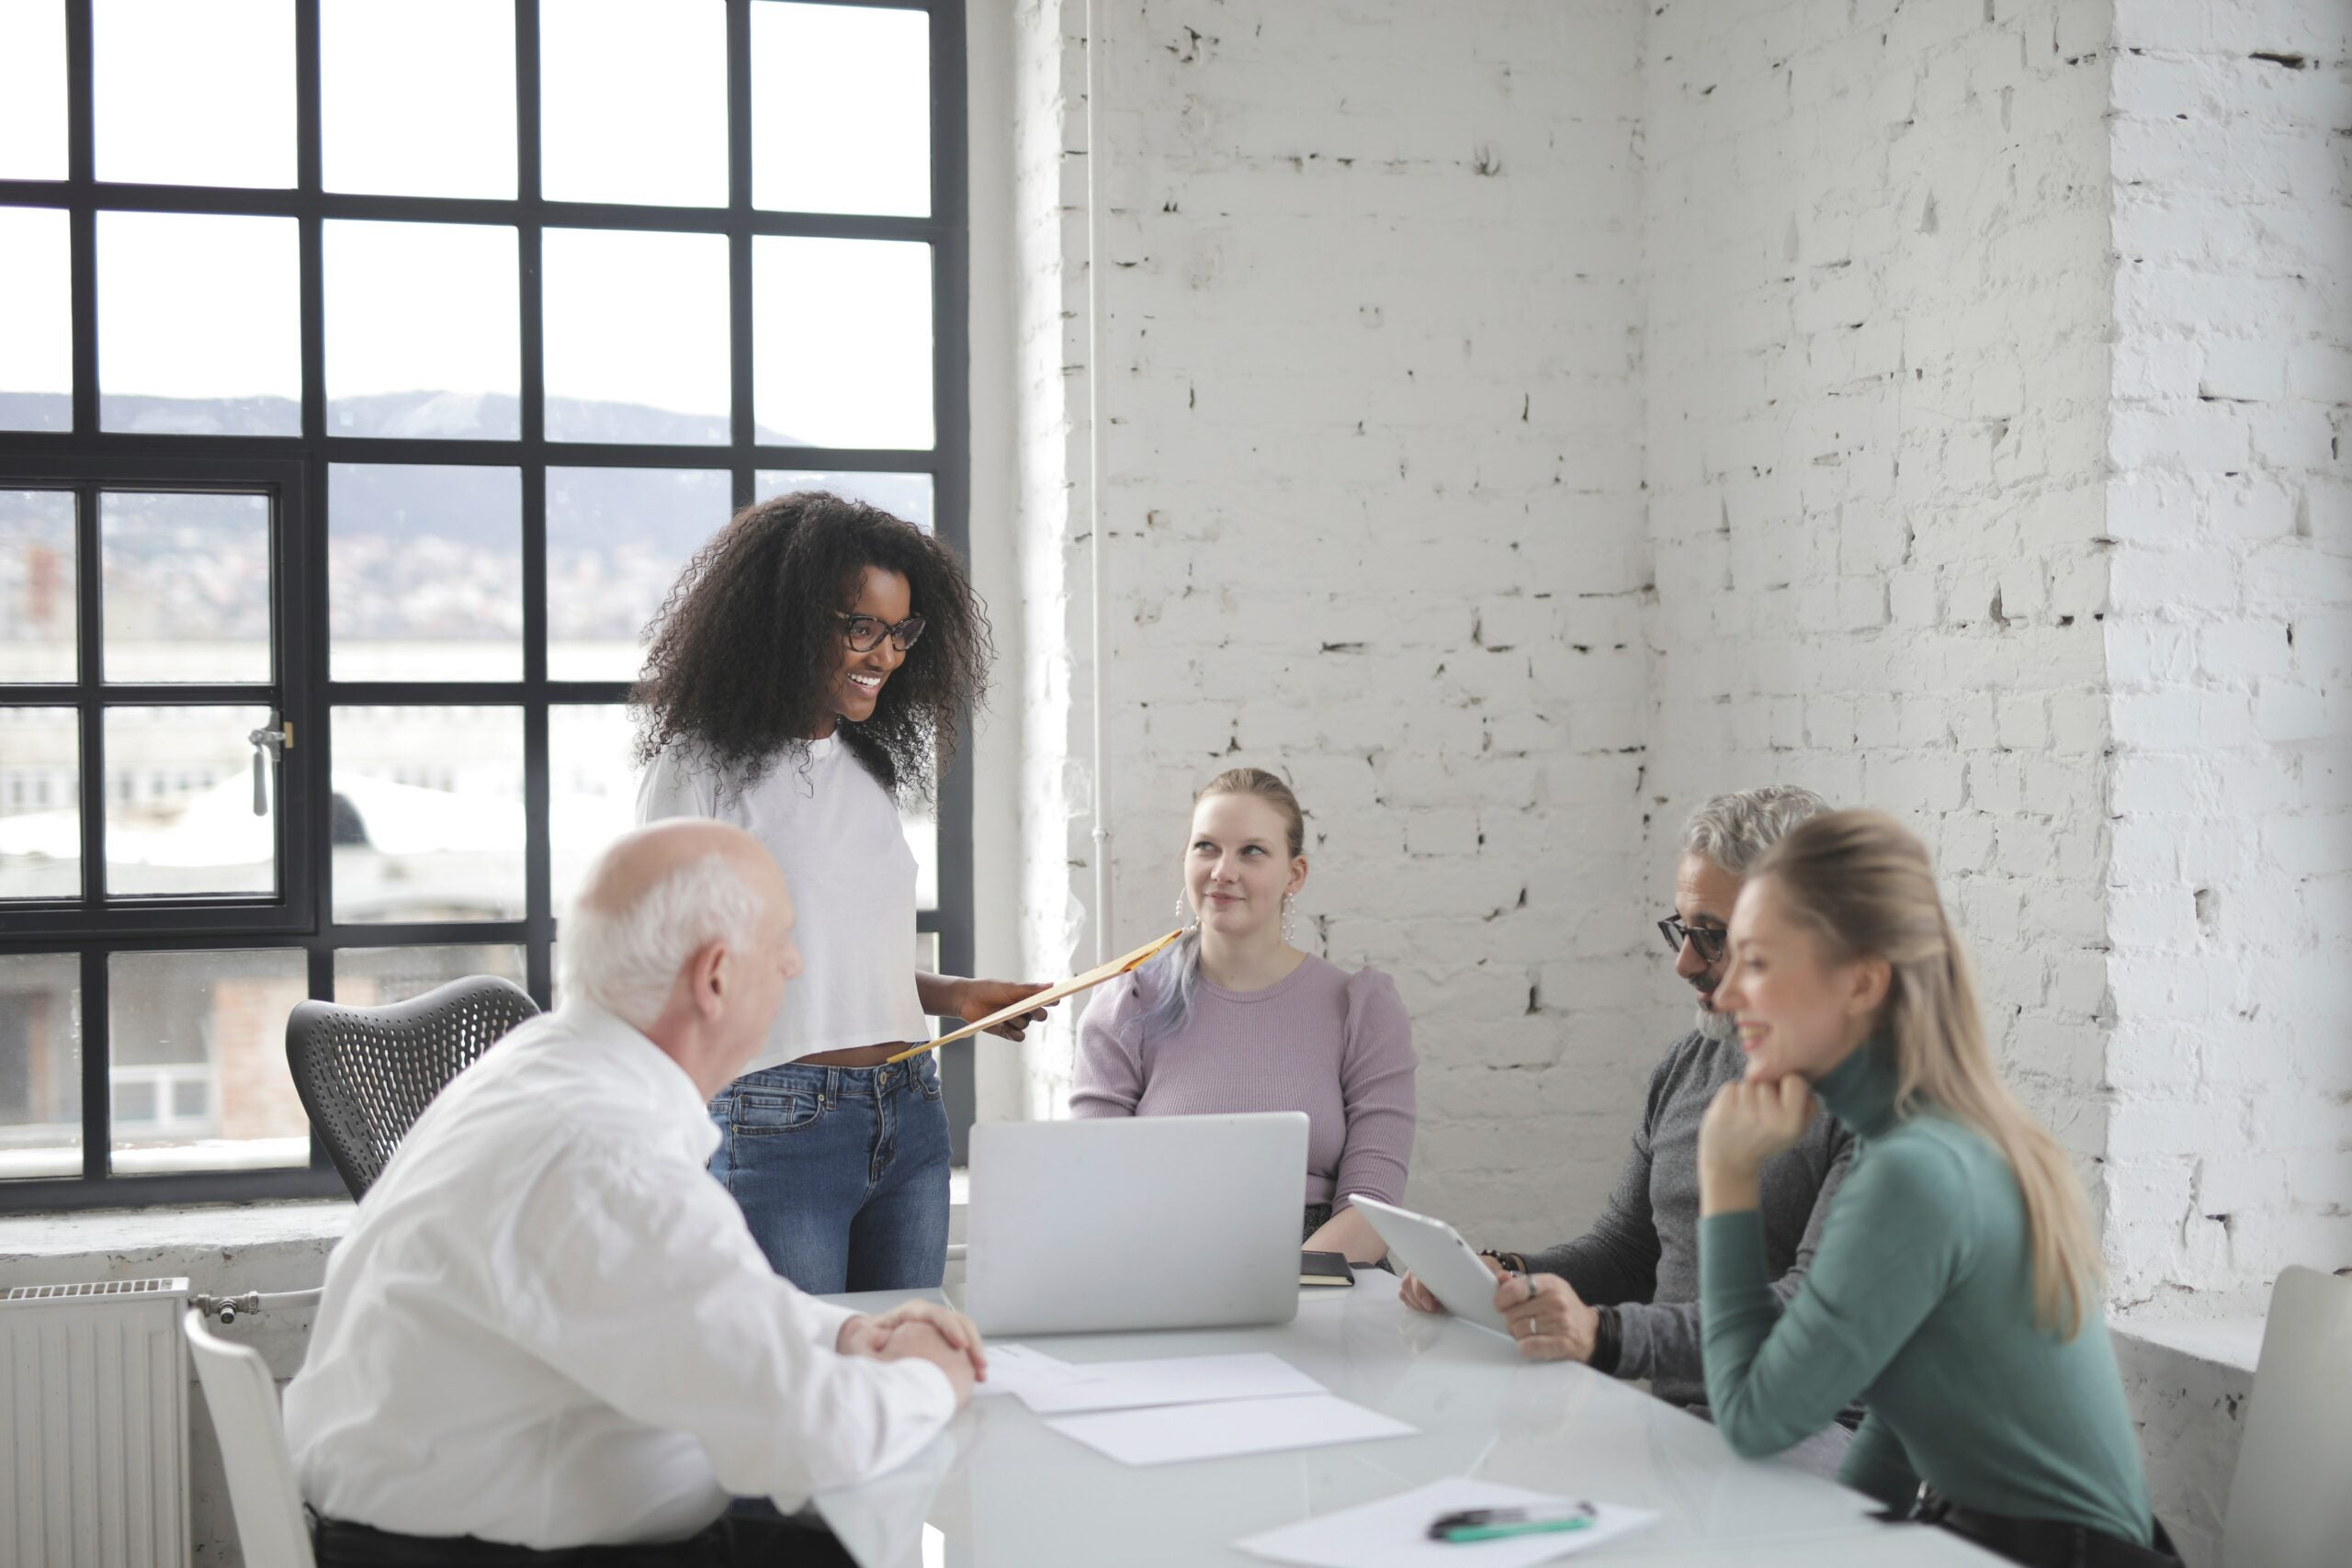 A group of professionals discuss how to stay on top of business finances